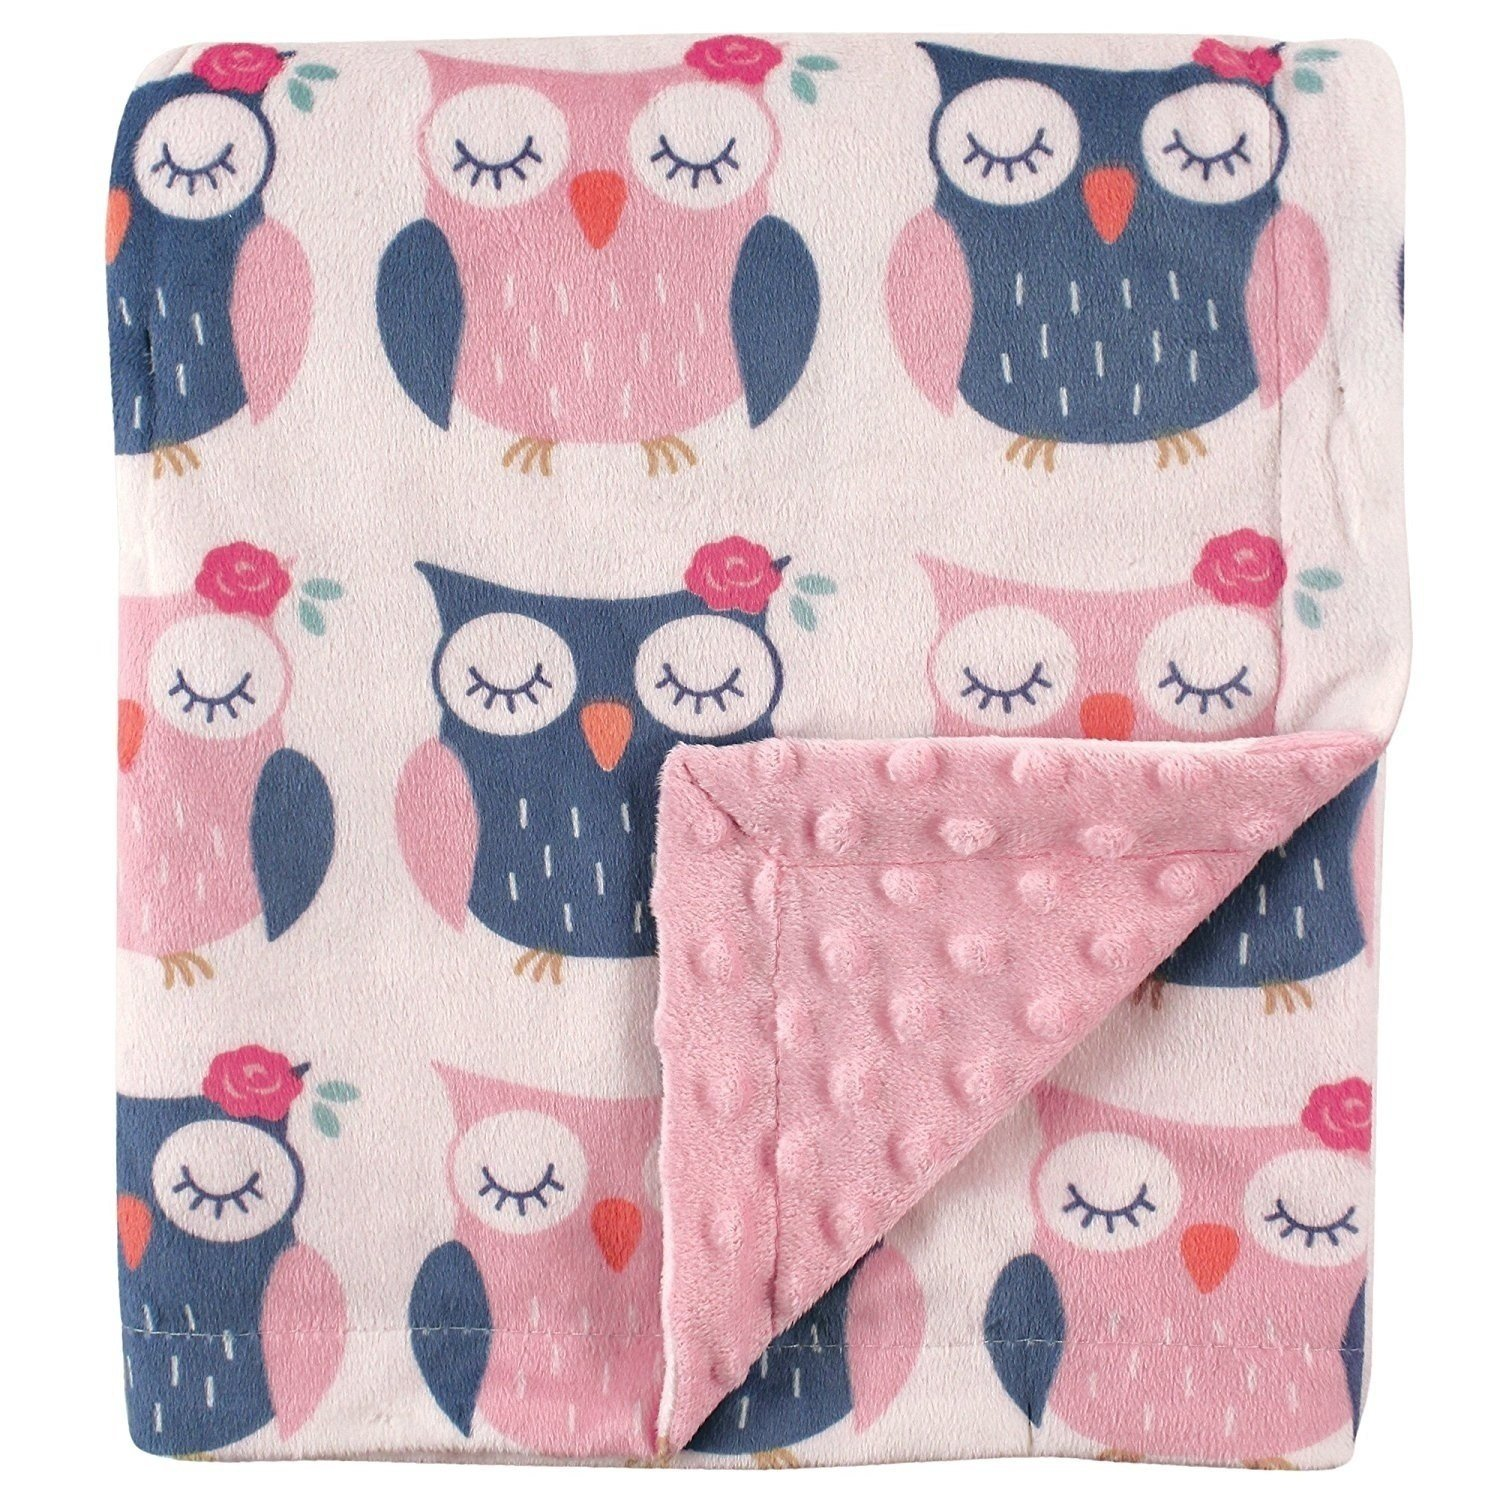 TN 1 Piece Baby Girls Pink Blue Grey Owls Crib Blanket, Newborn Forest Themed Nursery Bedding, Woods Nature Wildlife Flowers Floral Chenille Swaddle Cozy Soft Cute Adorable, Cotton